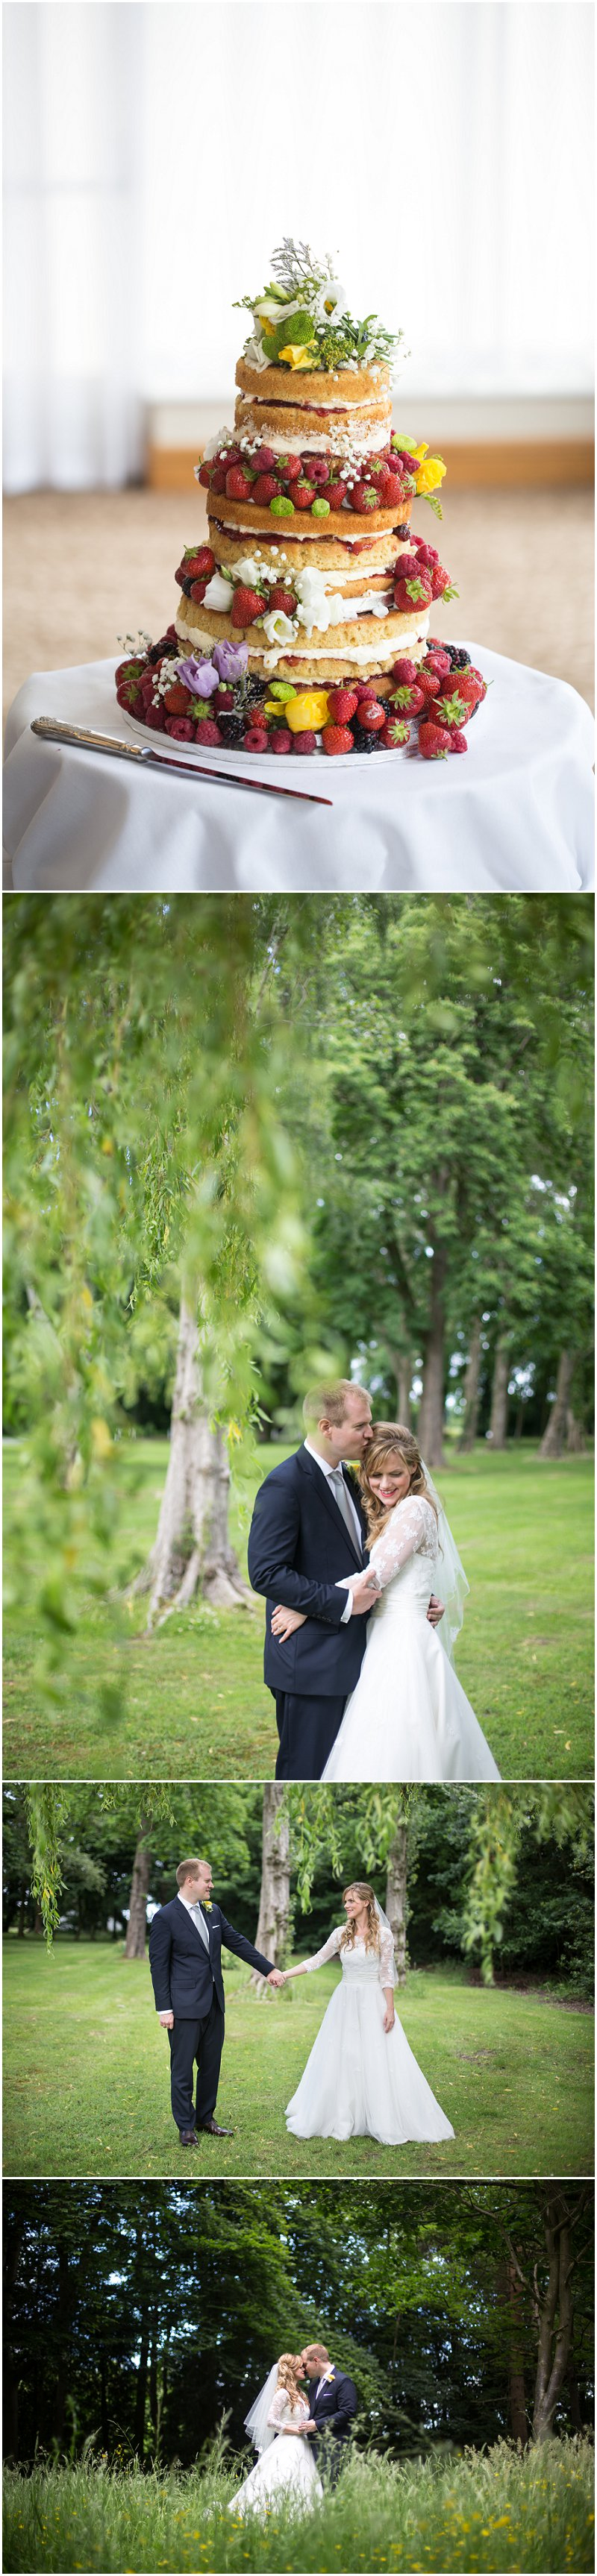 Gorgeous Bride and Groom at Chester Wedding Craxton Wood Hotel Wedding